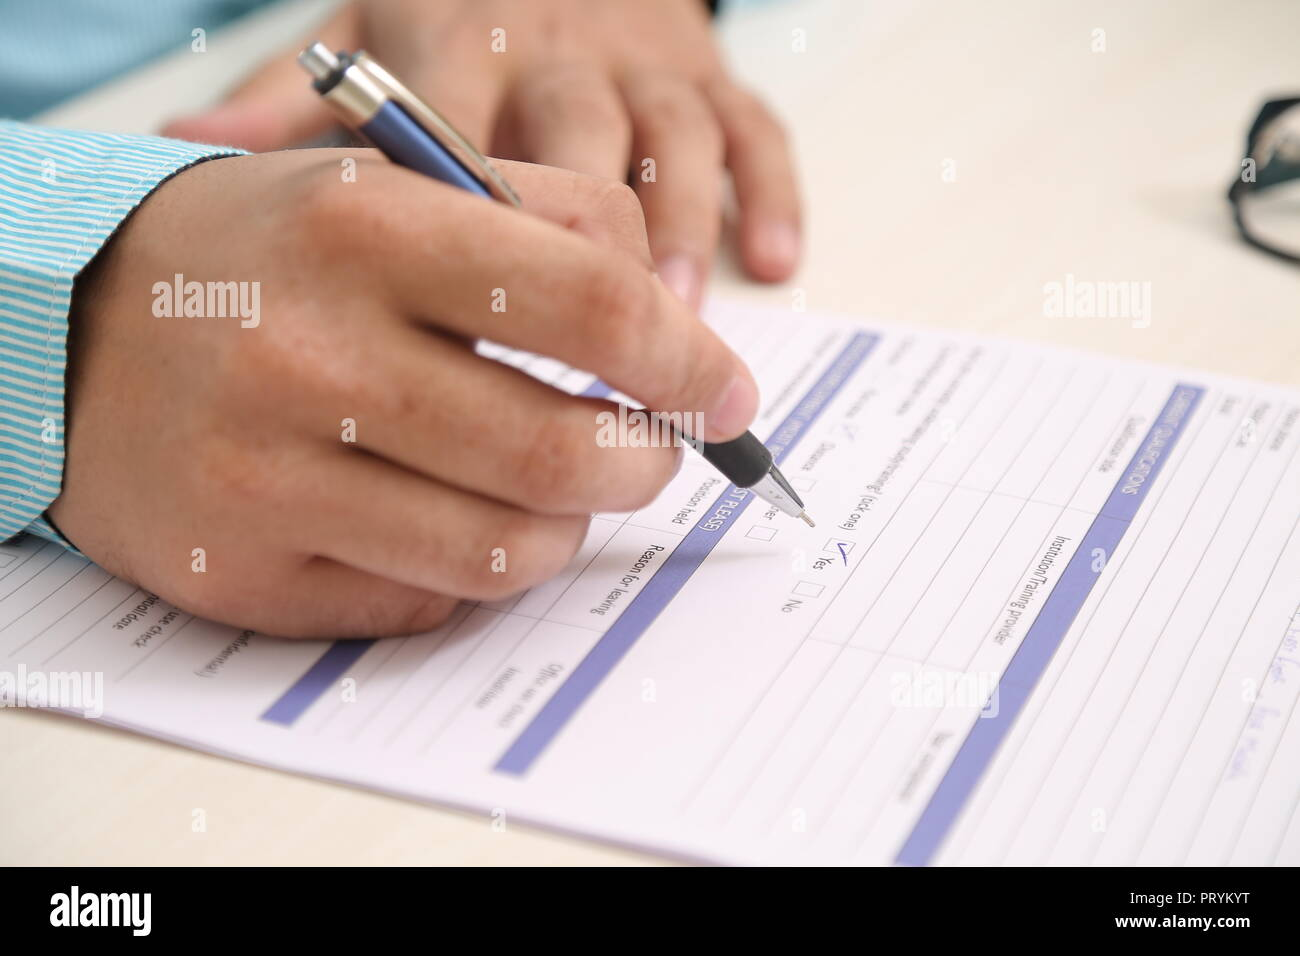 Picture of man holding pen with application form on the table. - Stock Image